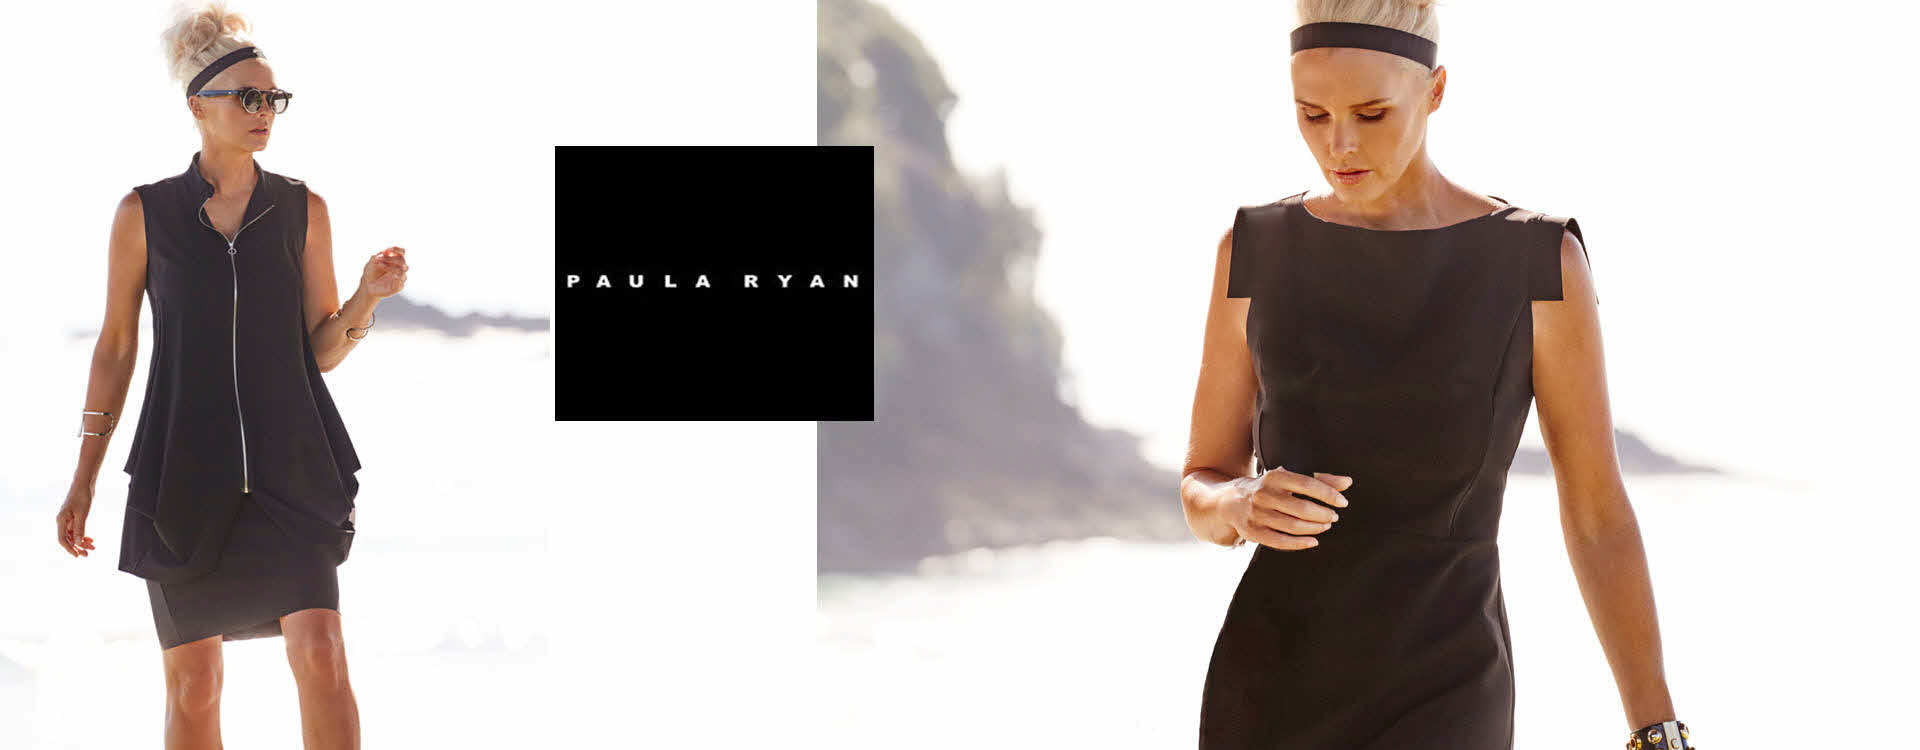 Paula Ryan SUMMER COLLECTION 2017